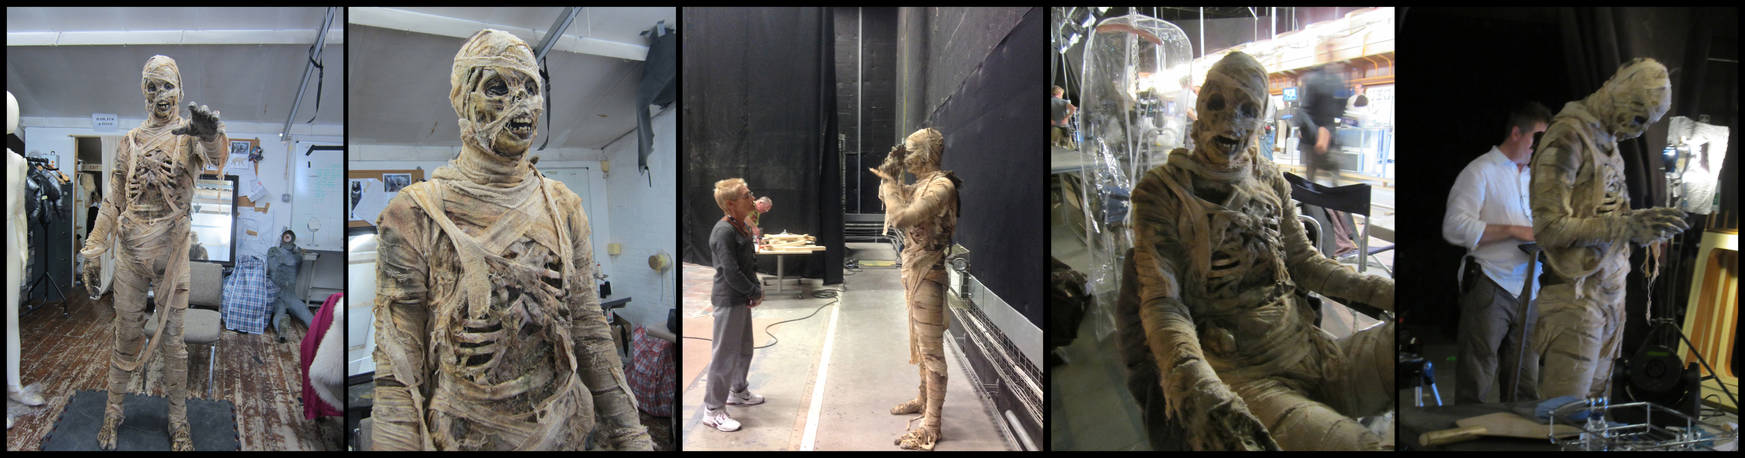 Dr Who - Mummy on the Orient Express - Final Suit